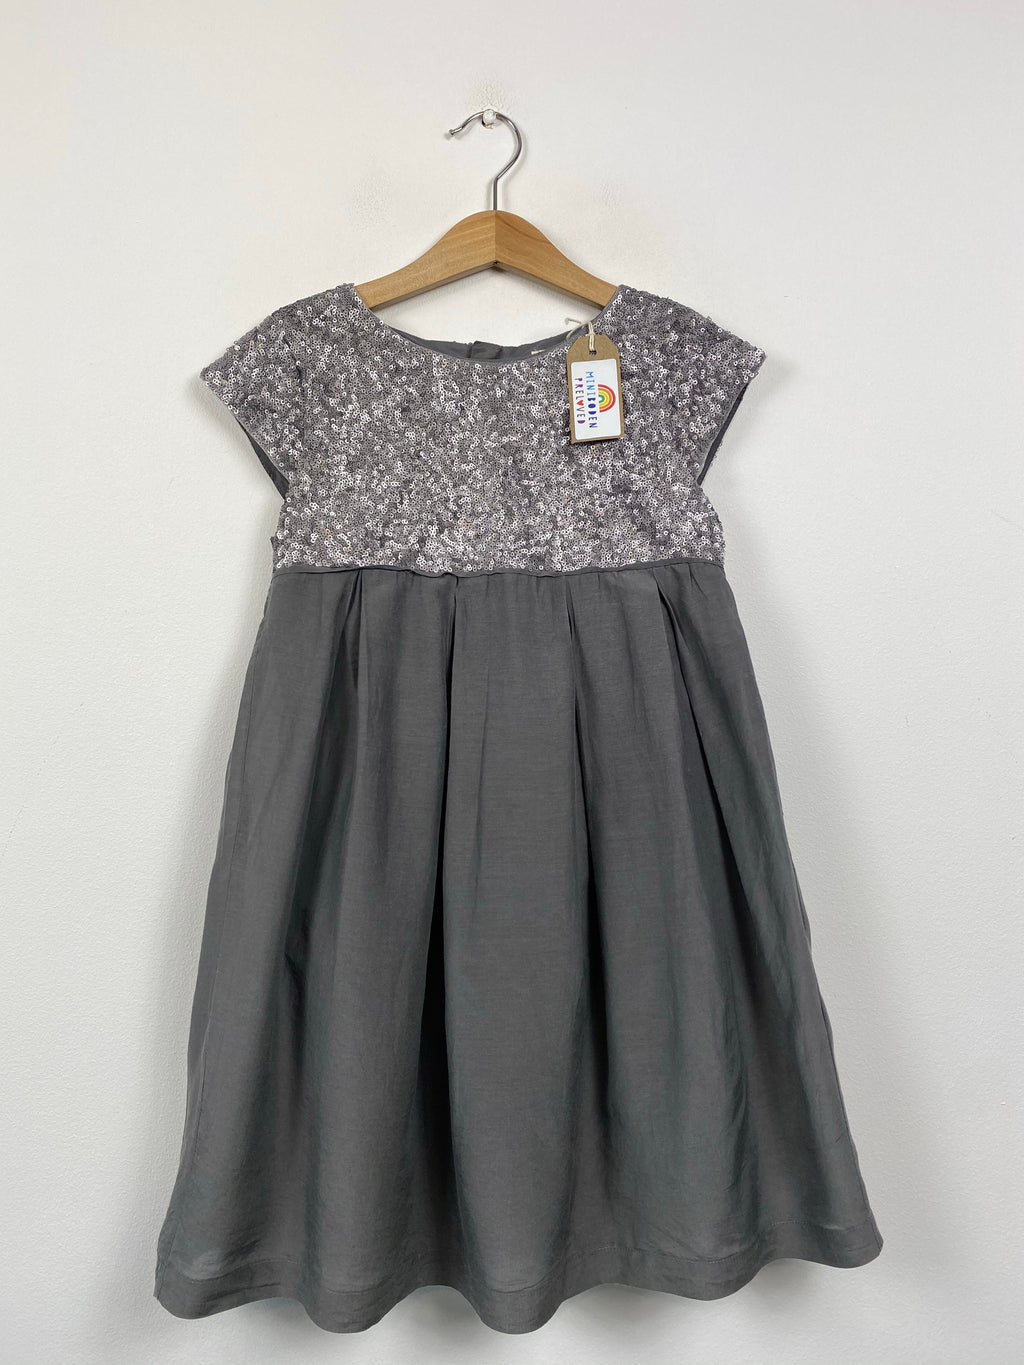 Grey Party Dress With Sequin Detail (6-7 Years)